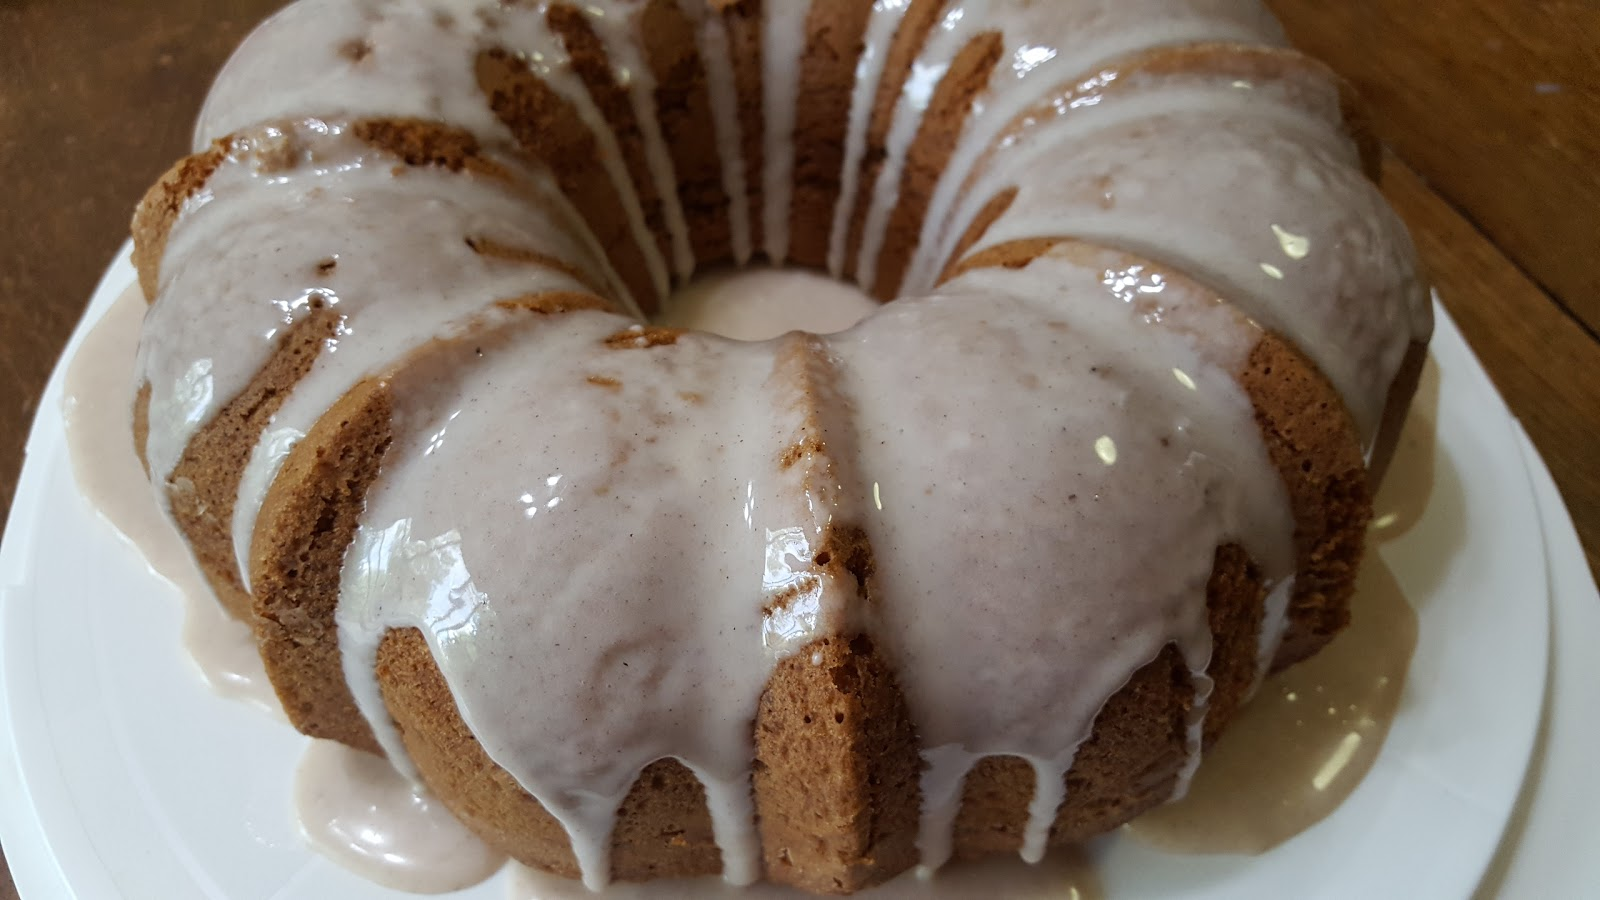 Use Of Spice Cake Mix With Applesauce